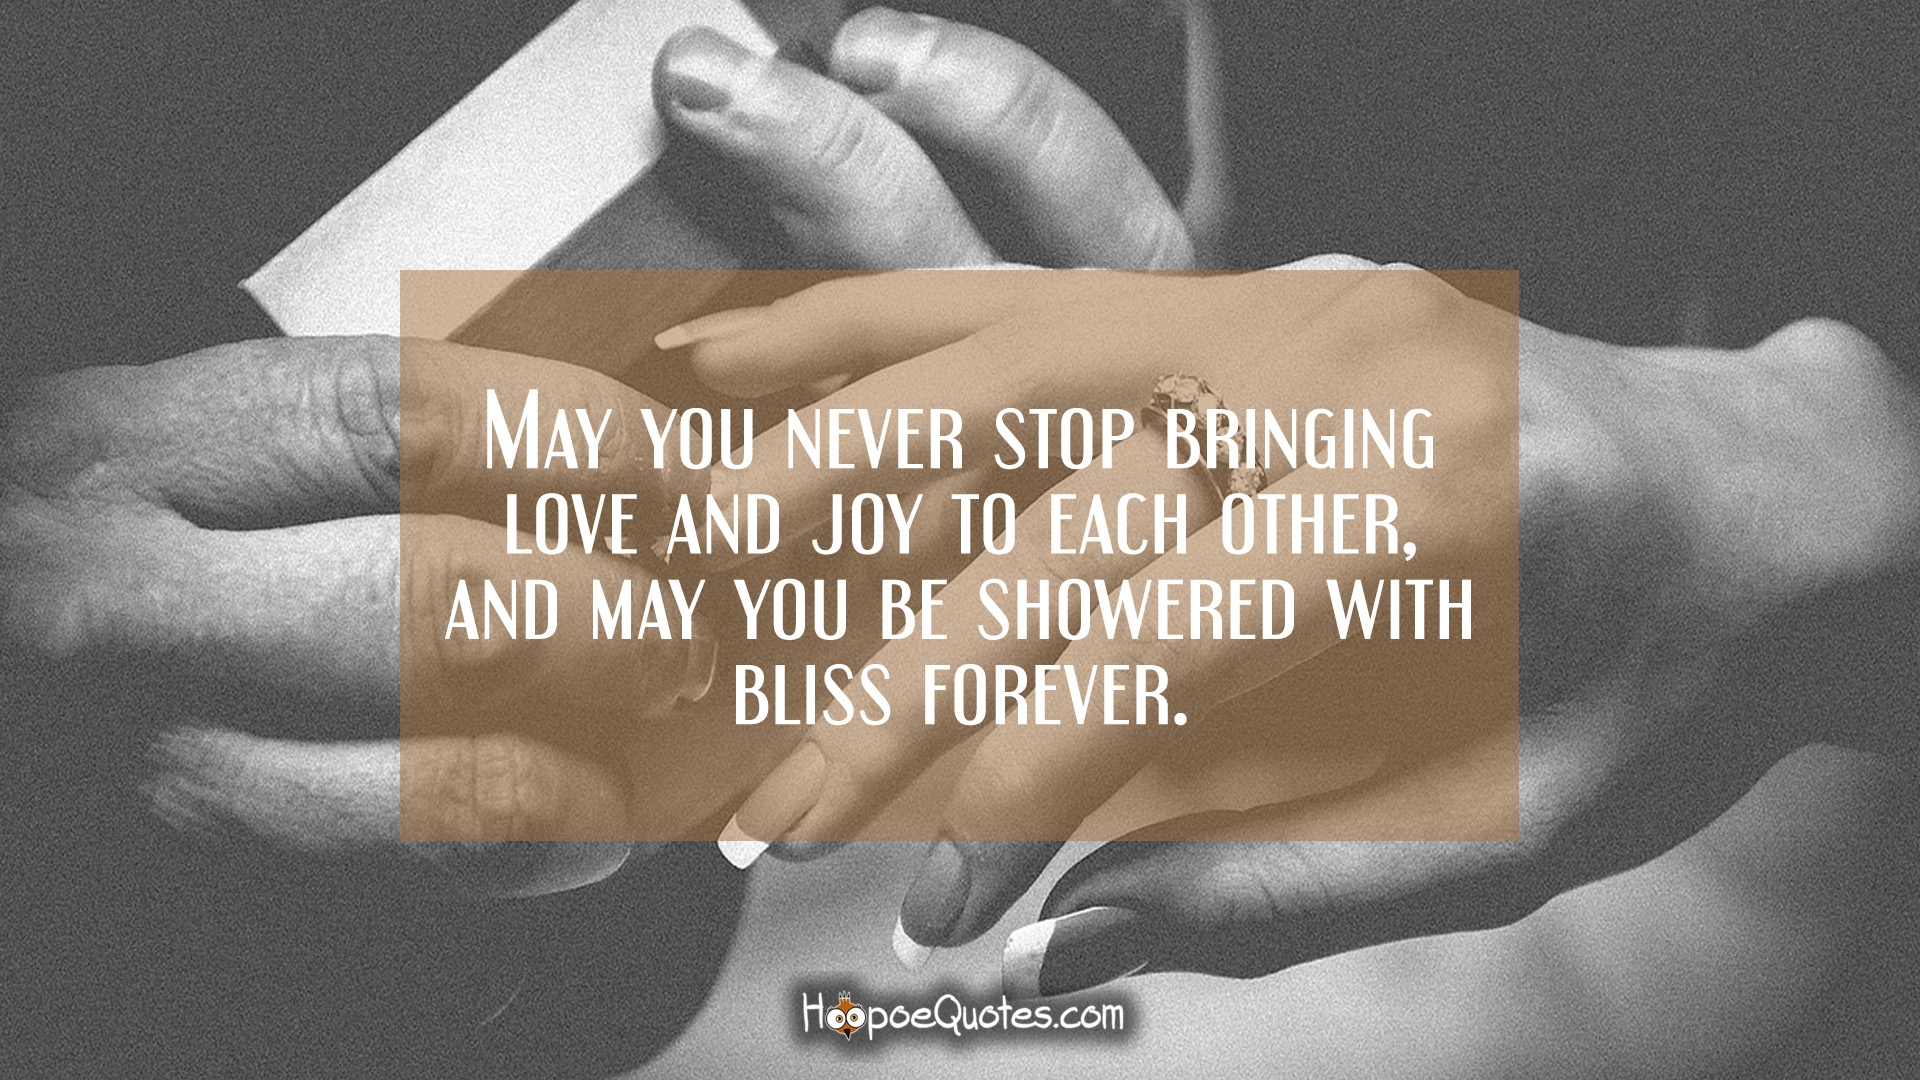 May you never stop bringing love and joy to each other and may you